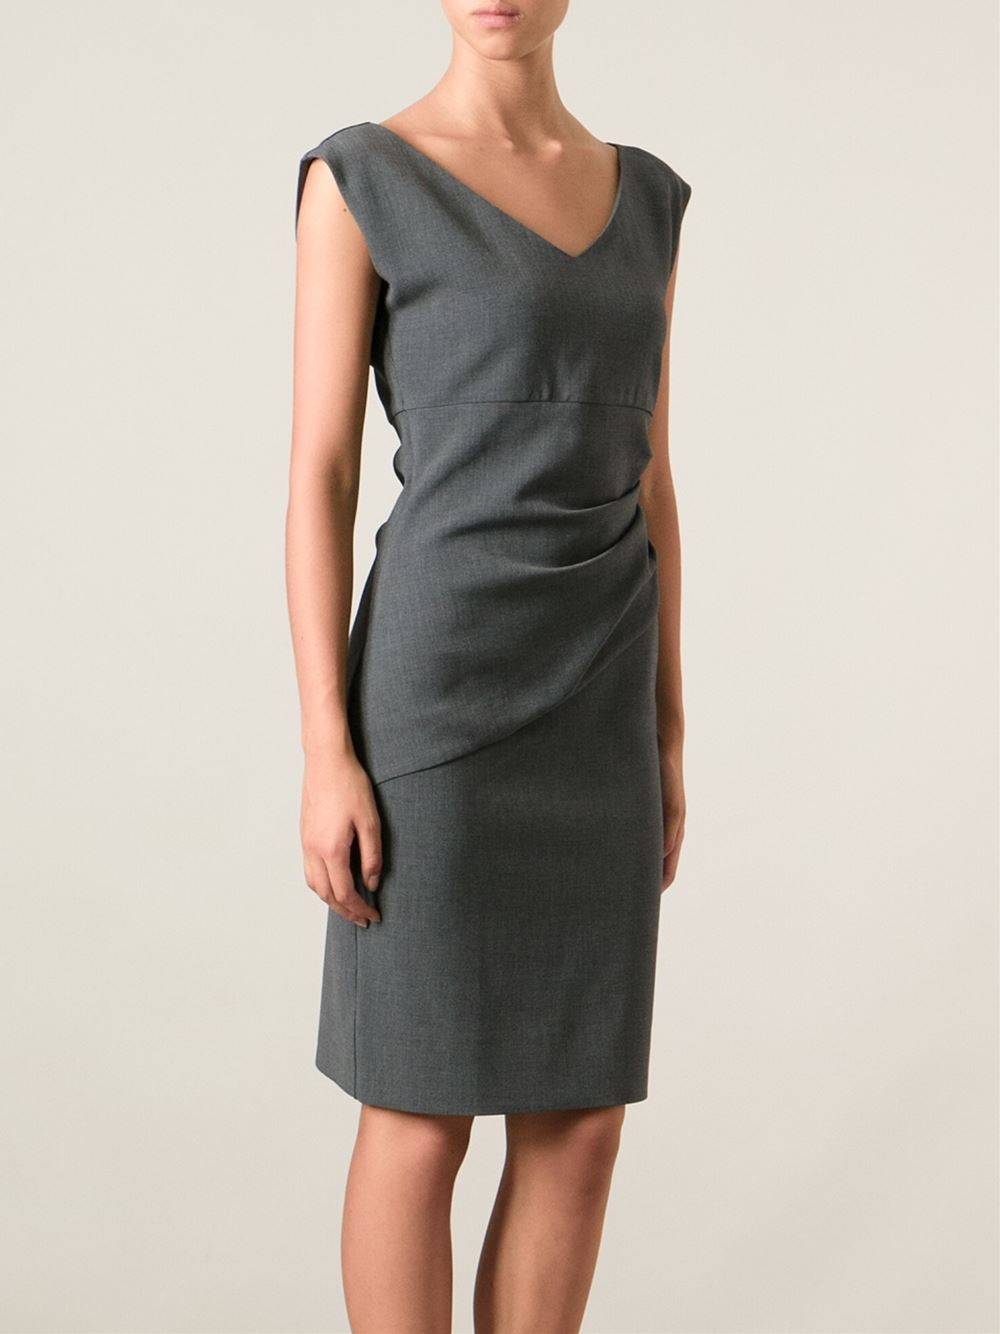 diane von furstenberg 39 bevin 39 fitted dress in gray grey lyst. Black Bedroom Furniture Sets. Home Design Ideas